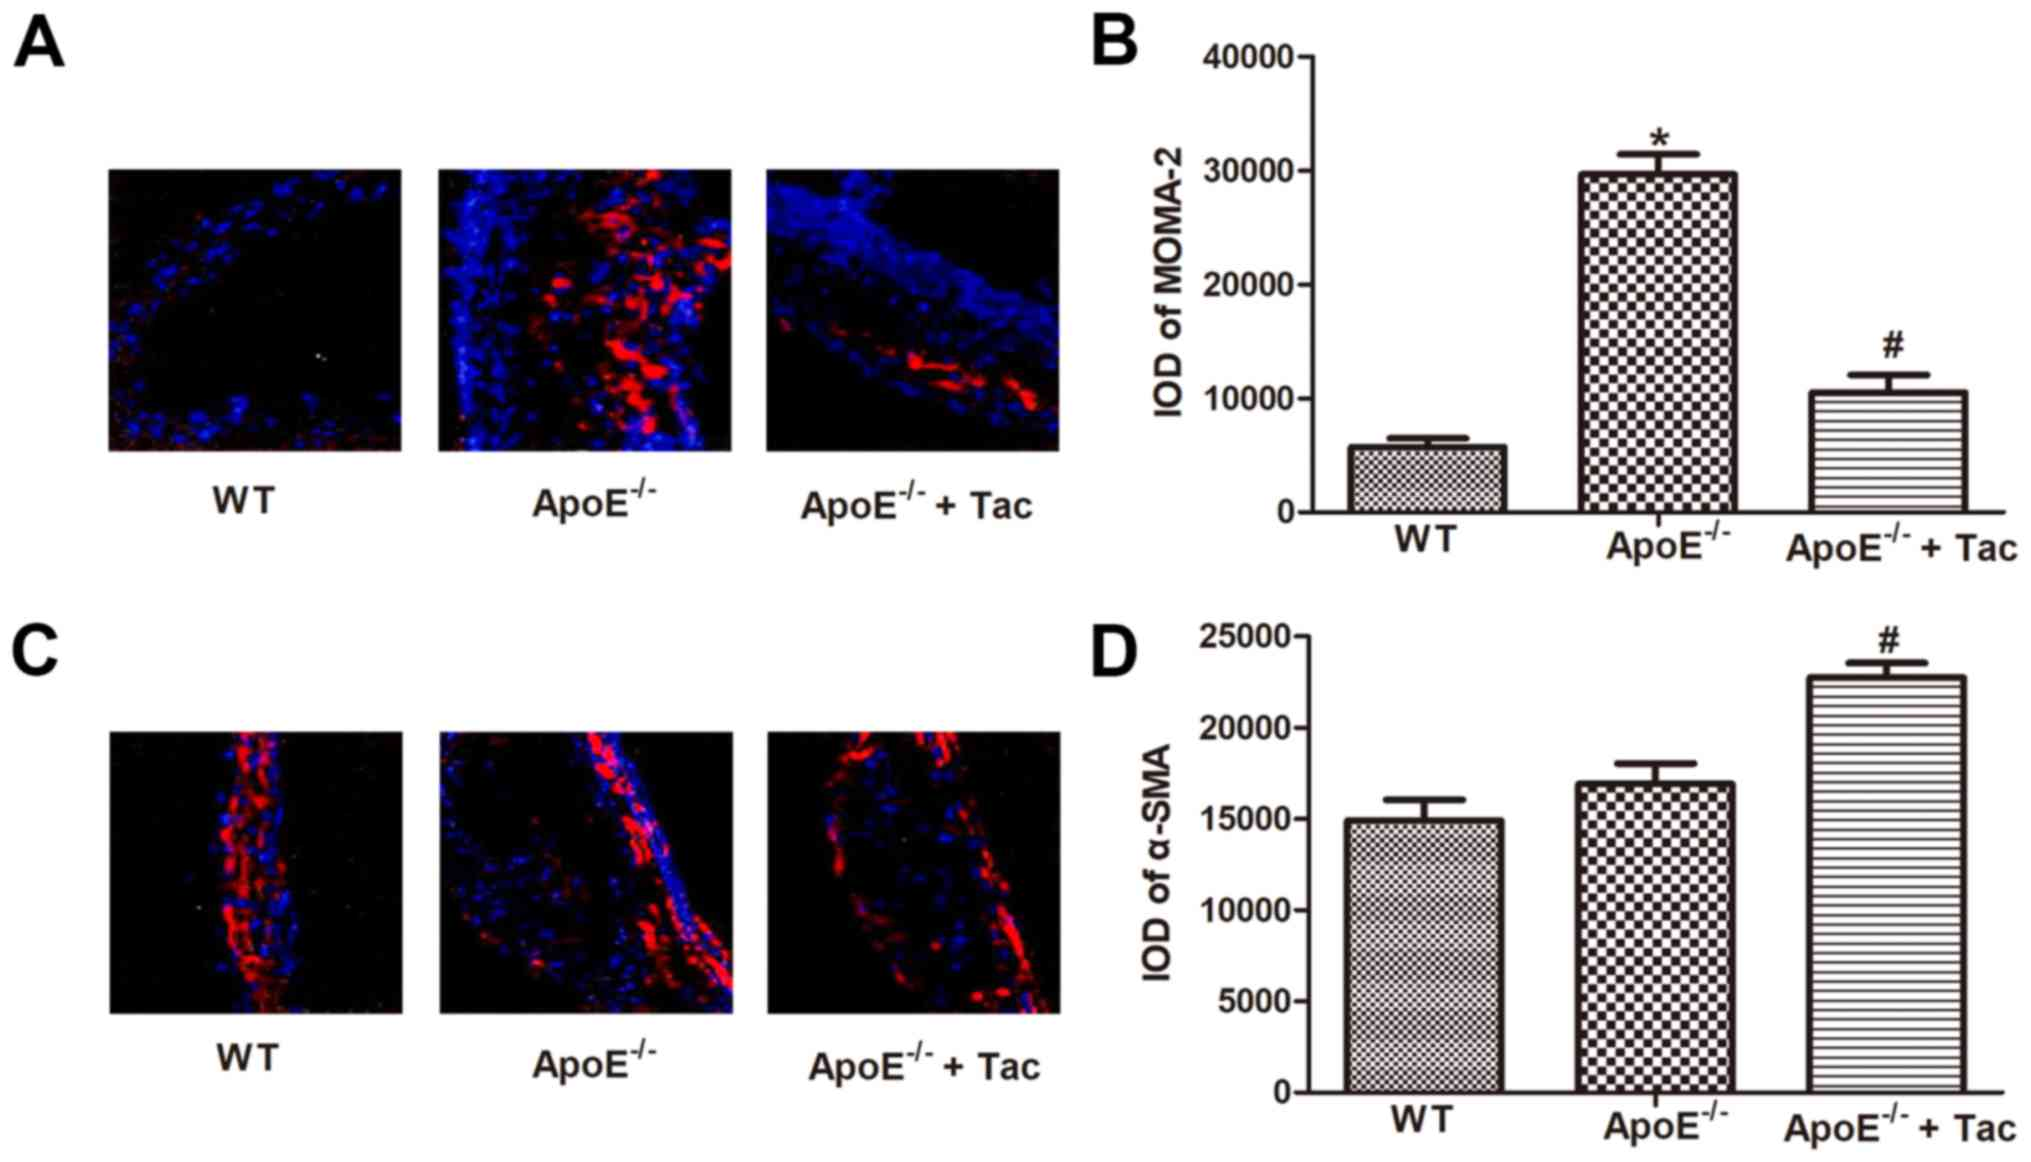 Plaque À Induction Pas Cher tacrolimus reduces atherosclerotic plaque formation in apoe